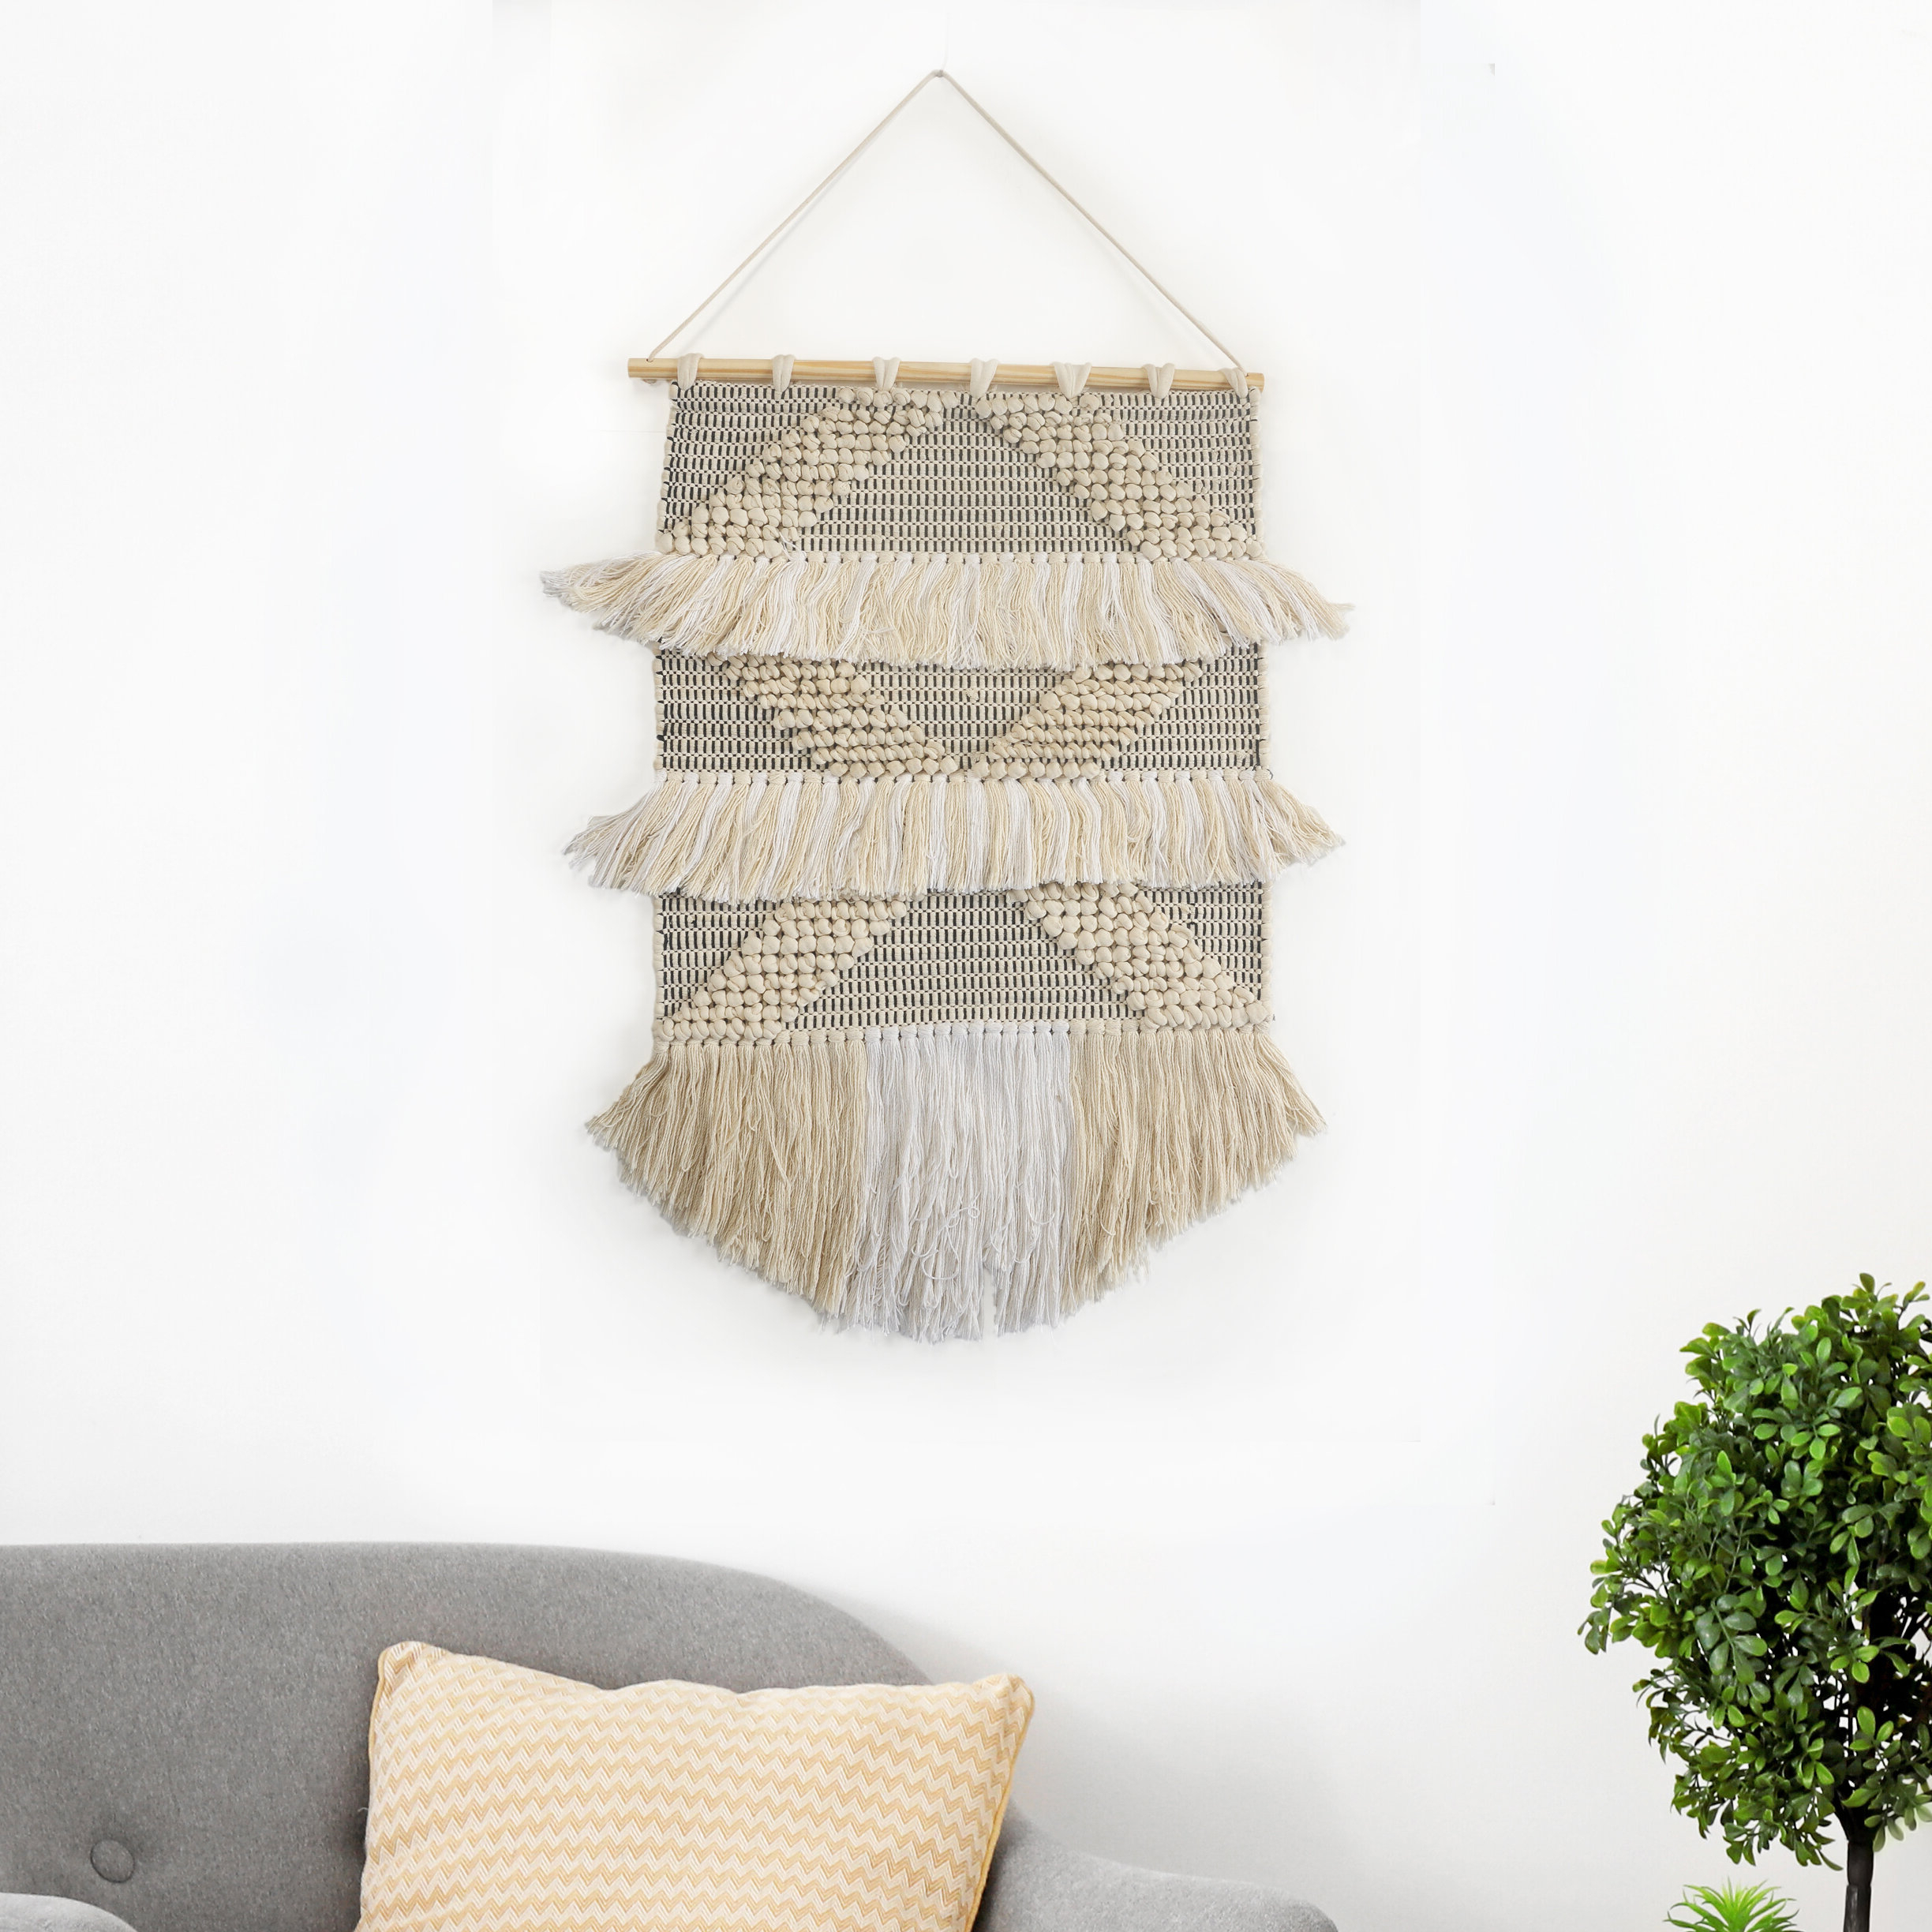 Cotton Diamond Tufted And Fringed Wall Hanging With Hanging Accessories Included Regarding Most Recently Released Blended Fabric Southwestern Bohemian Wall Hangings (View 19 of 20)